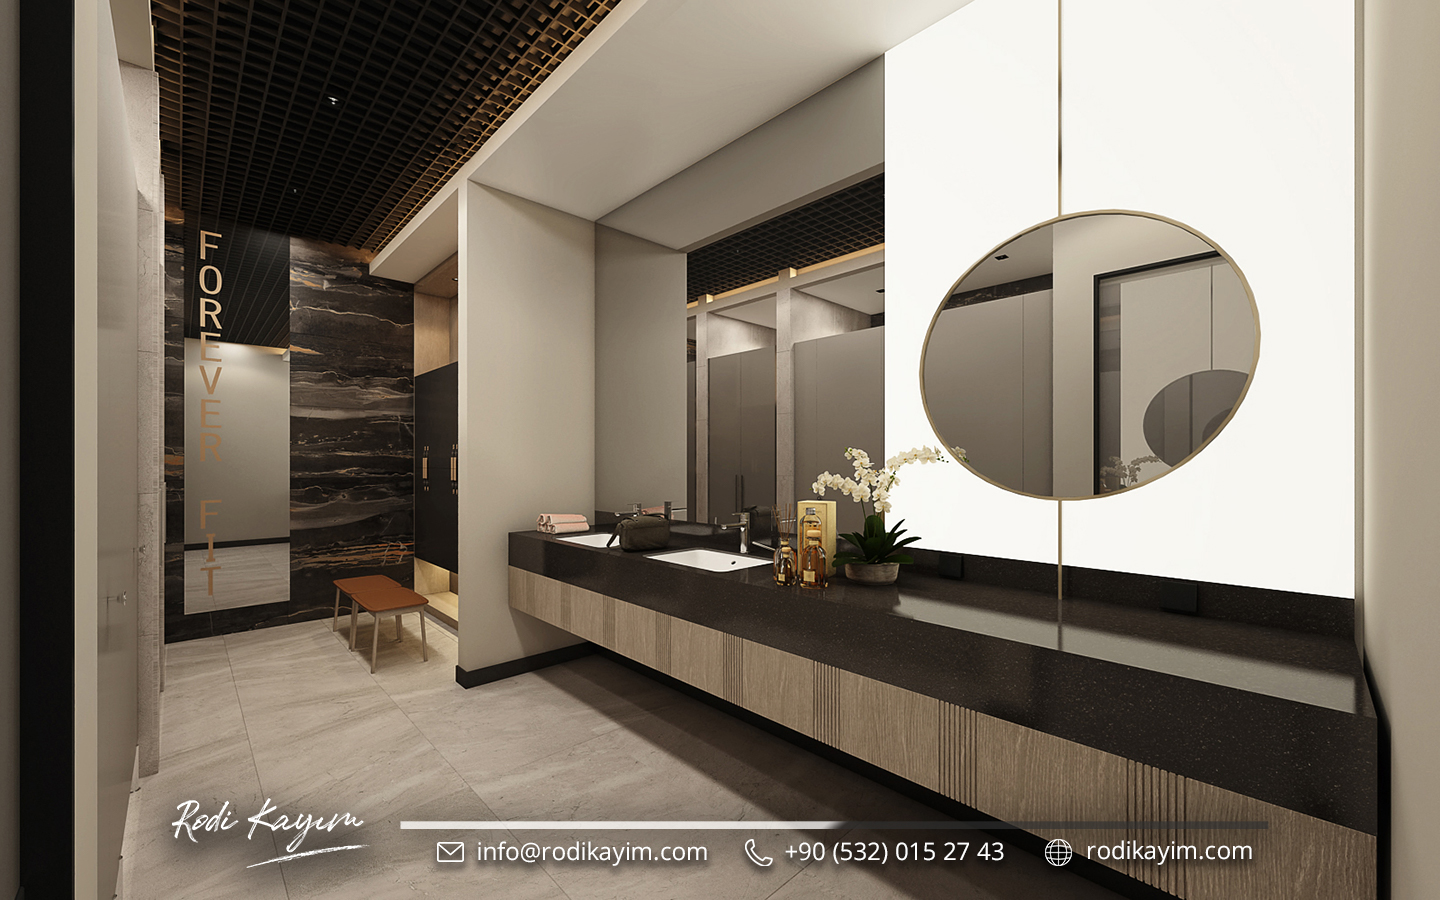 Self Istanbul Real Estate Project In Istanbul 44